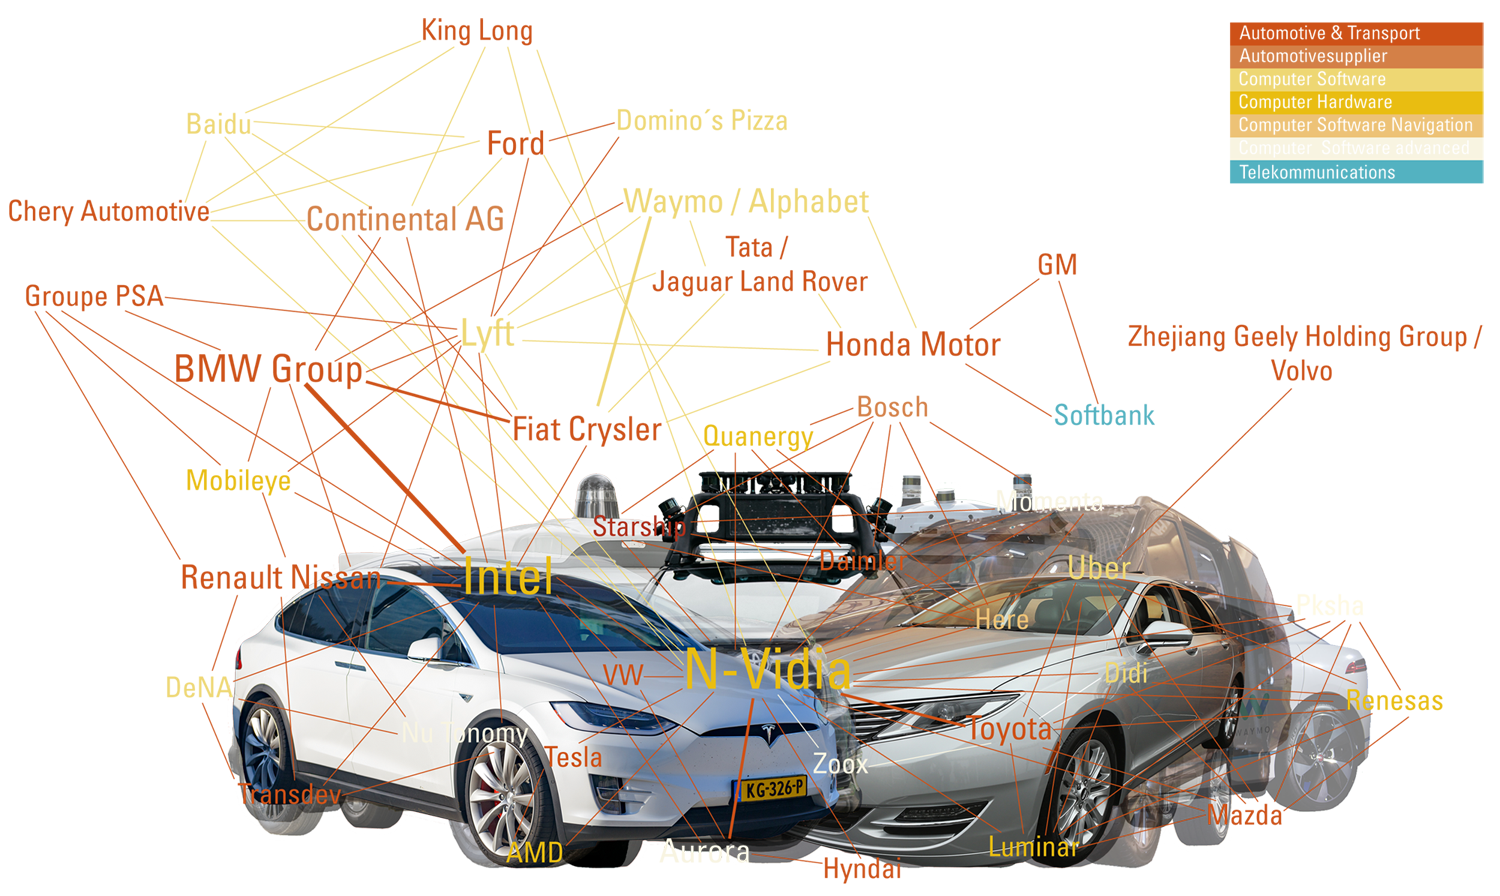 Tech heiratet Automotive - Netzdiagramm: Darstellung der Branchen der AV-Player____by yuyun, form:f - critical design